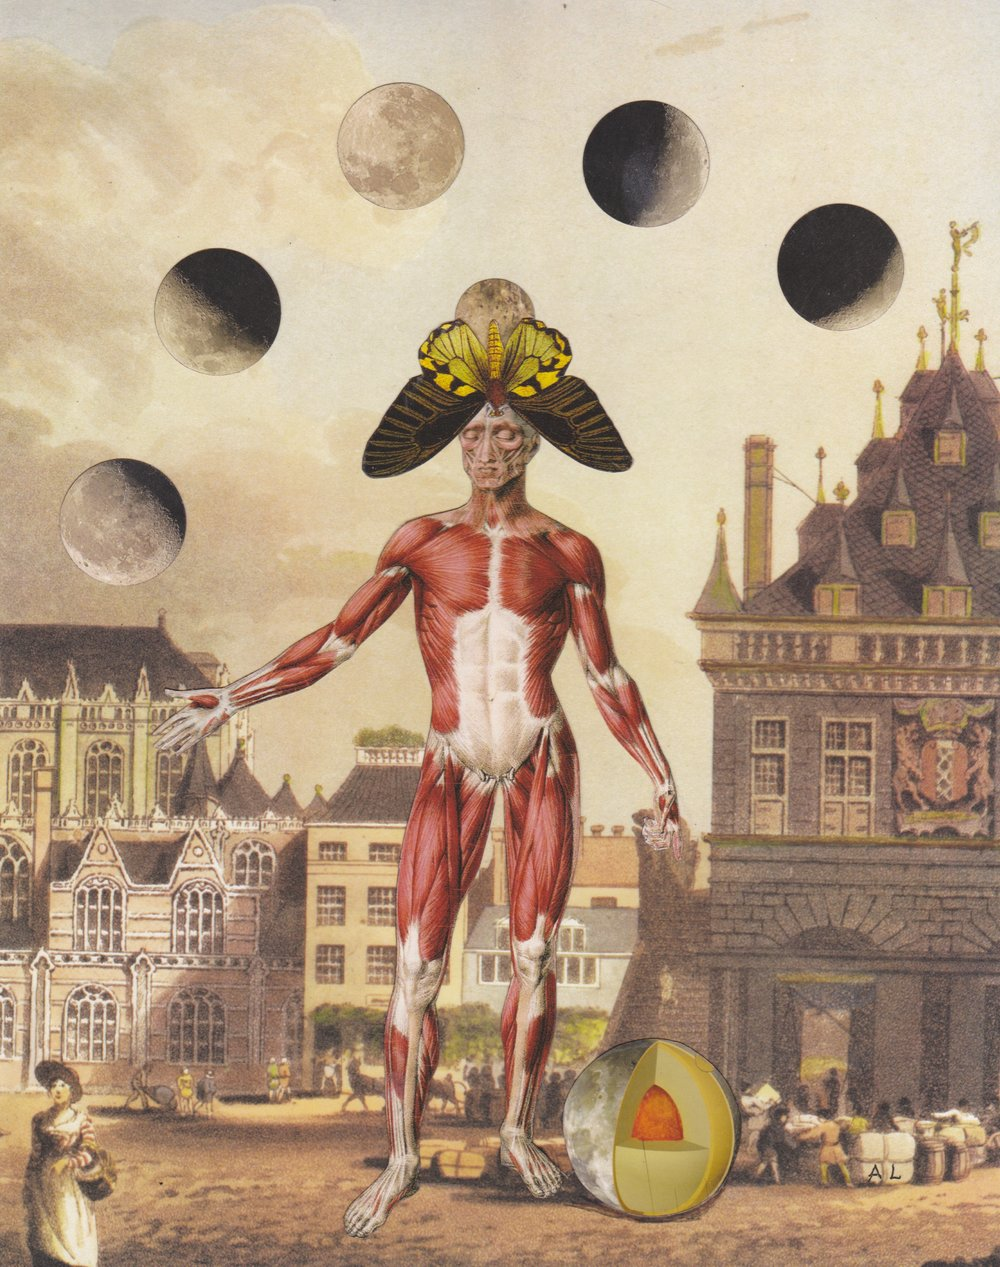 "Lunar Event over Amsterdam, 8"" x 10"" collage on paper, 2016"